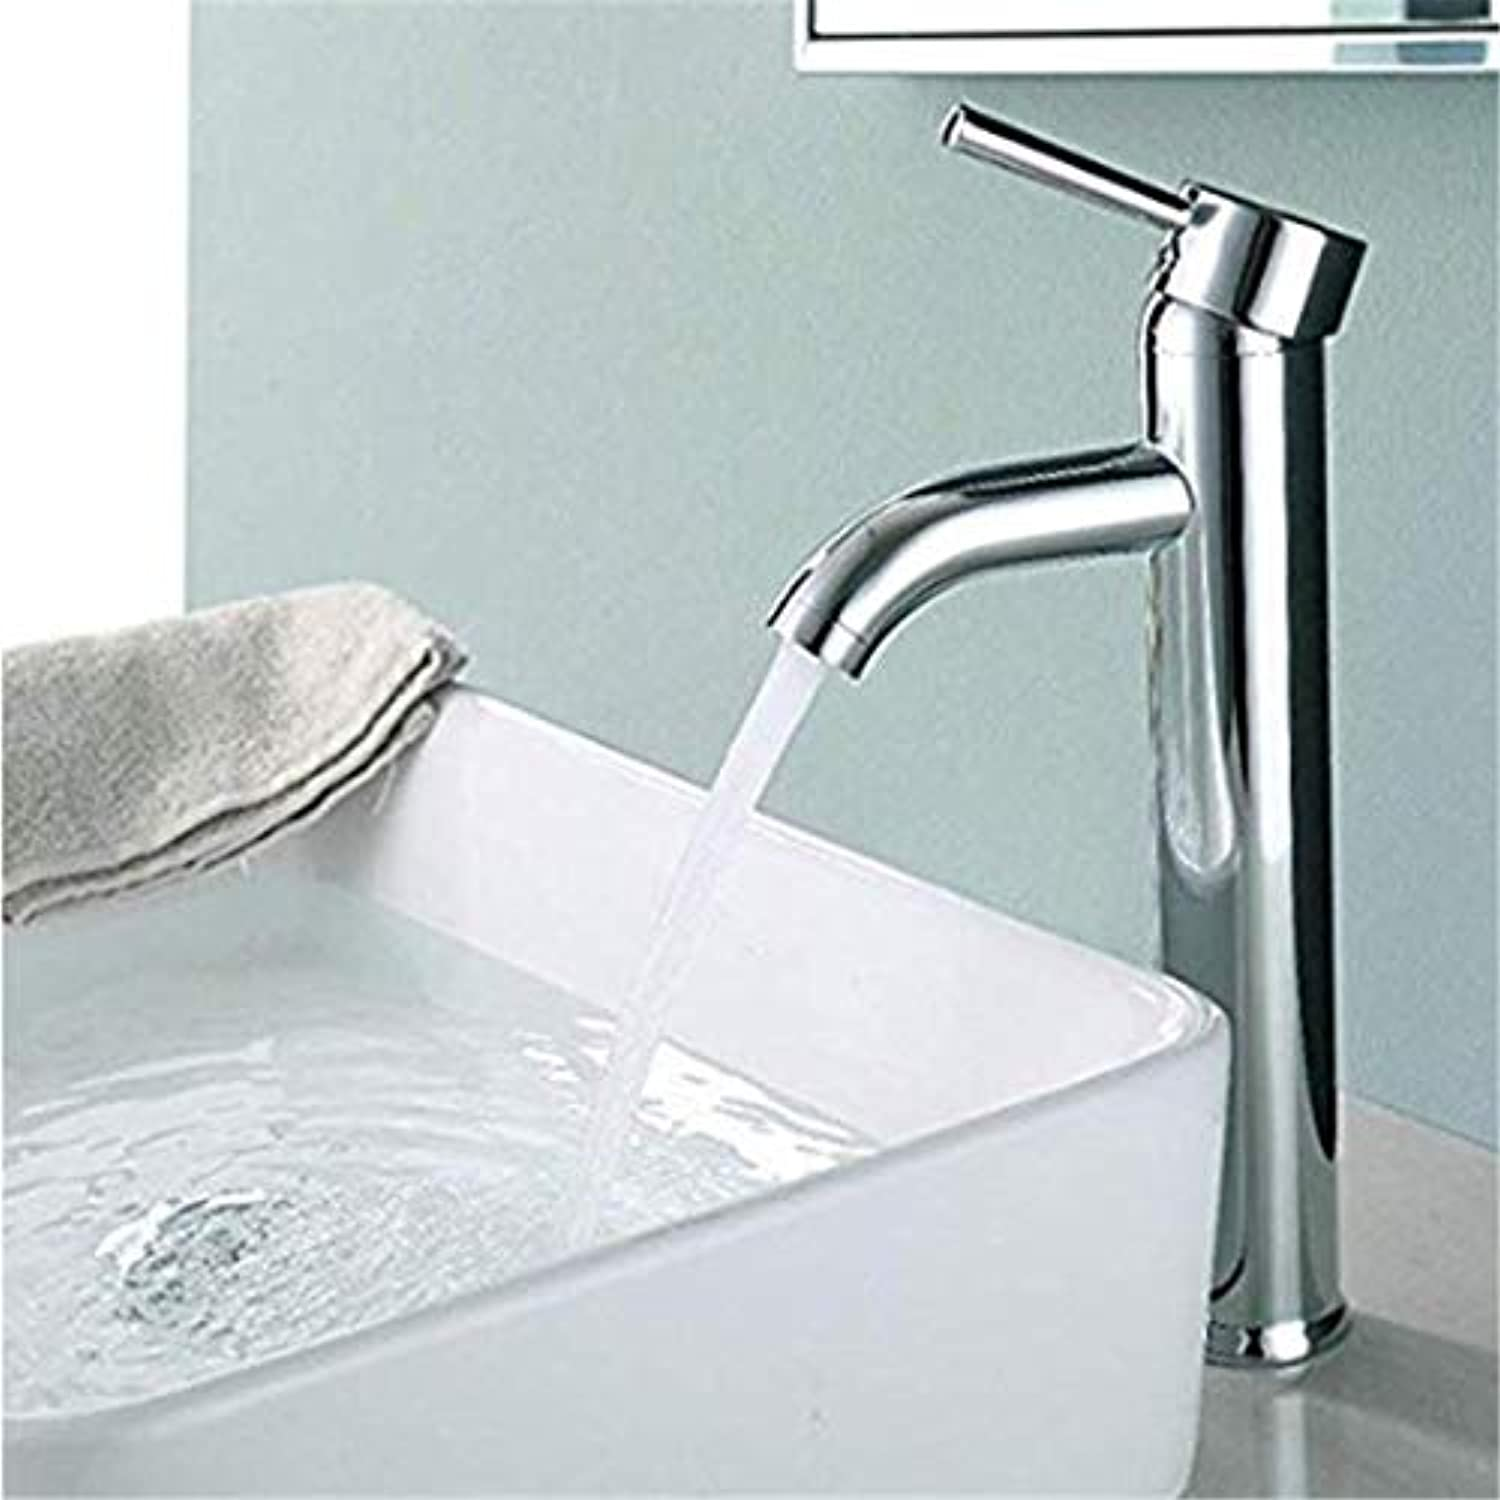 Bronze Basin Bathroom Faucet Faucet Chrome Finished Single Handle Single Hole Waterfall Stainless Steel Deck Inssizetion Sink Faucet